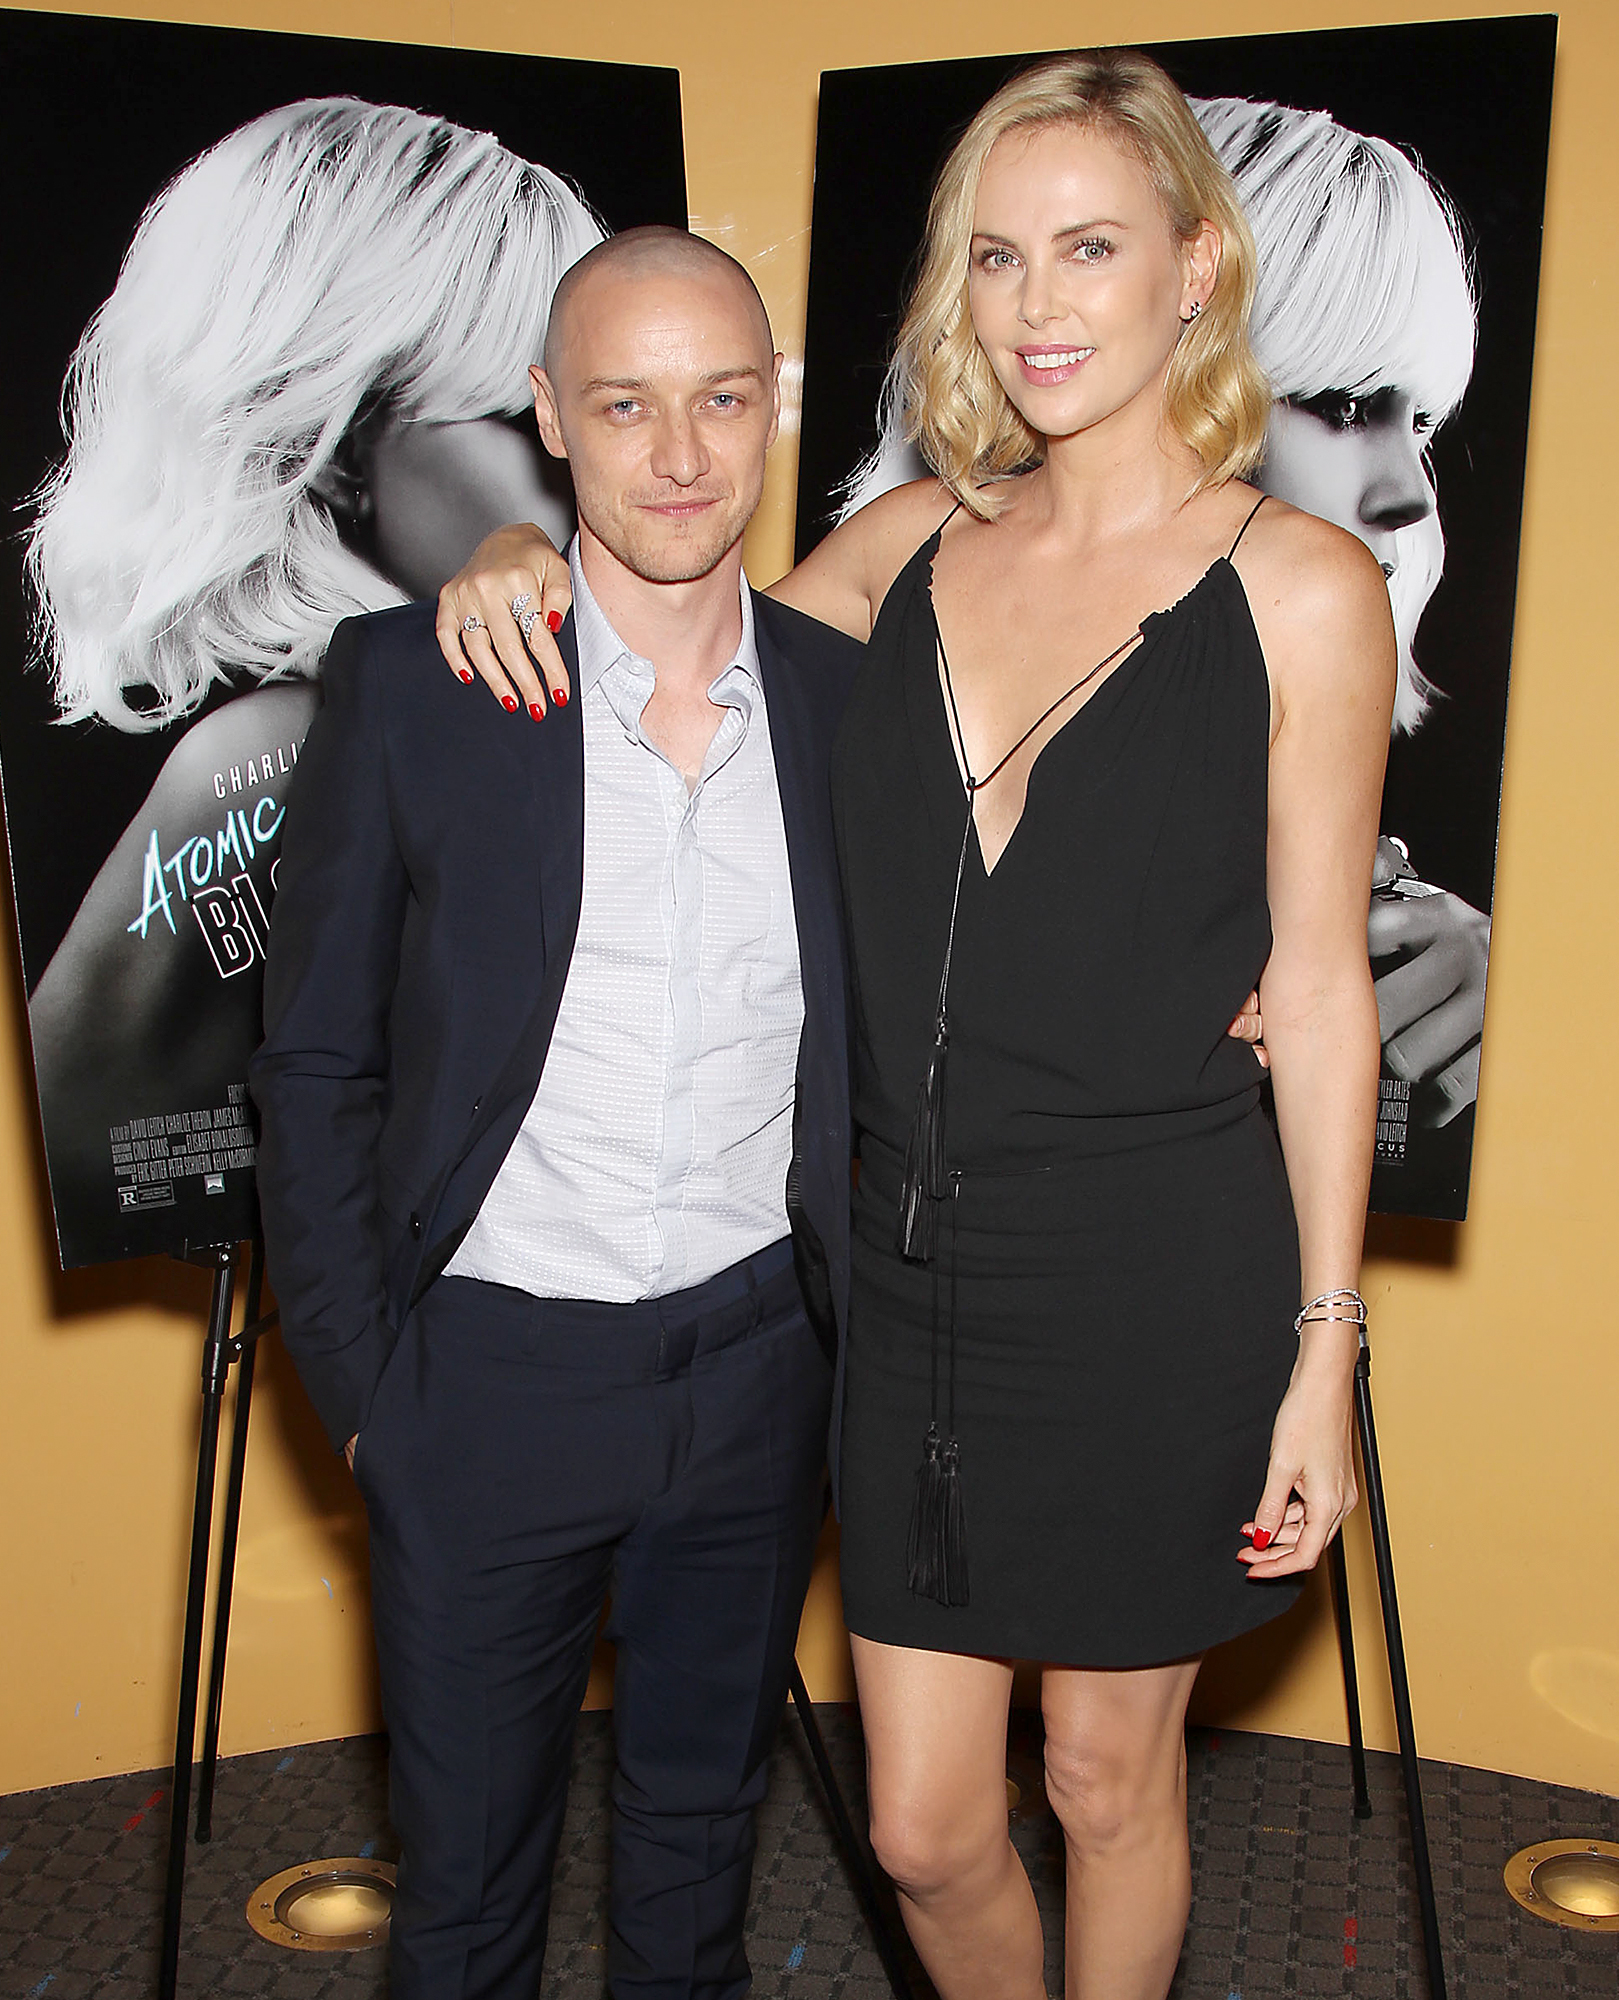 Charlize Theron and James McAvoy at the Stoli Vodka Advanced Screening of Focus Features 'Atomic Blond', New York, USA - 19 Jul 2017